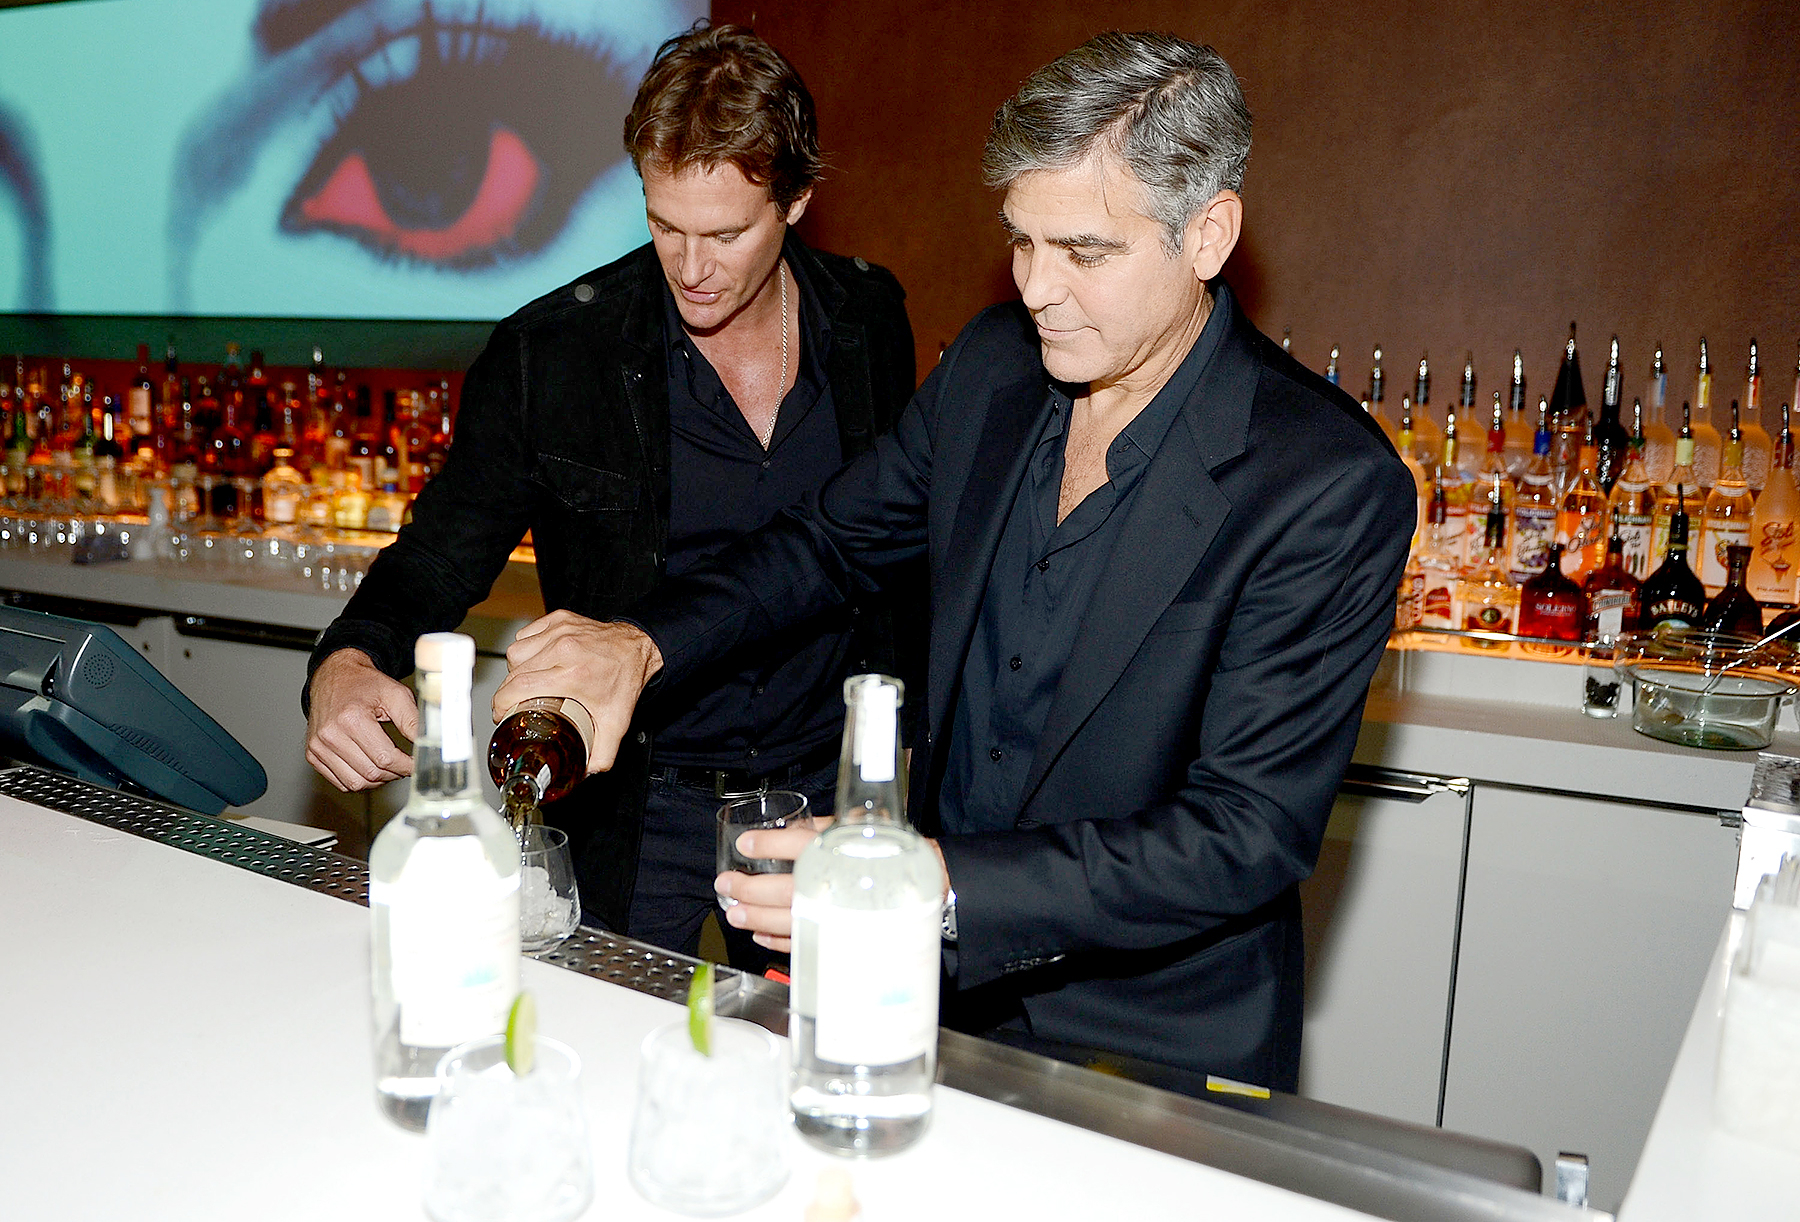 Casamigos Tequila founders Rande Gerber and George Clooney celebrate the launch of Casamigos at Andrea's at Encore Las Vegas on January 9, 2013 in Las Vegas, Nevada.